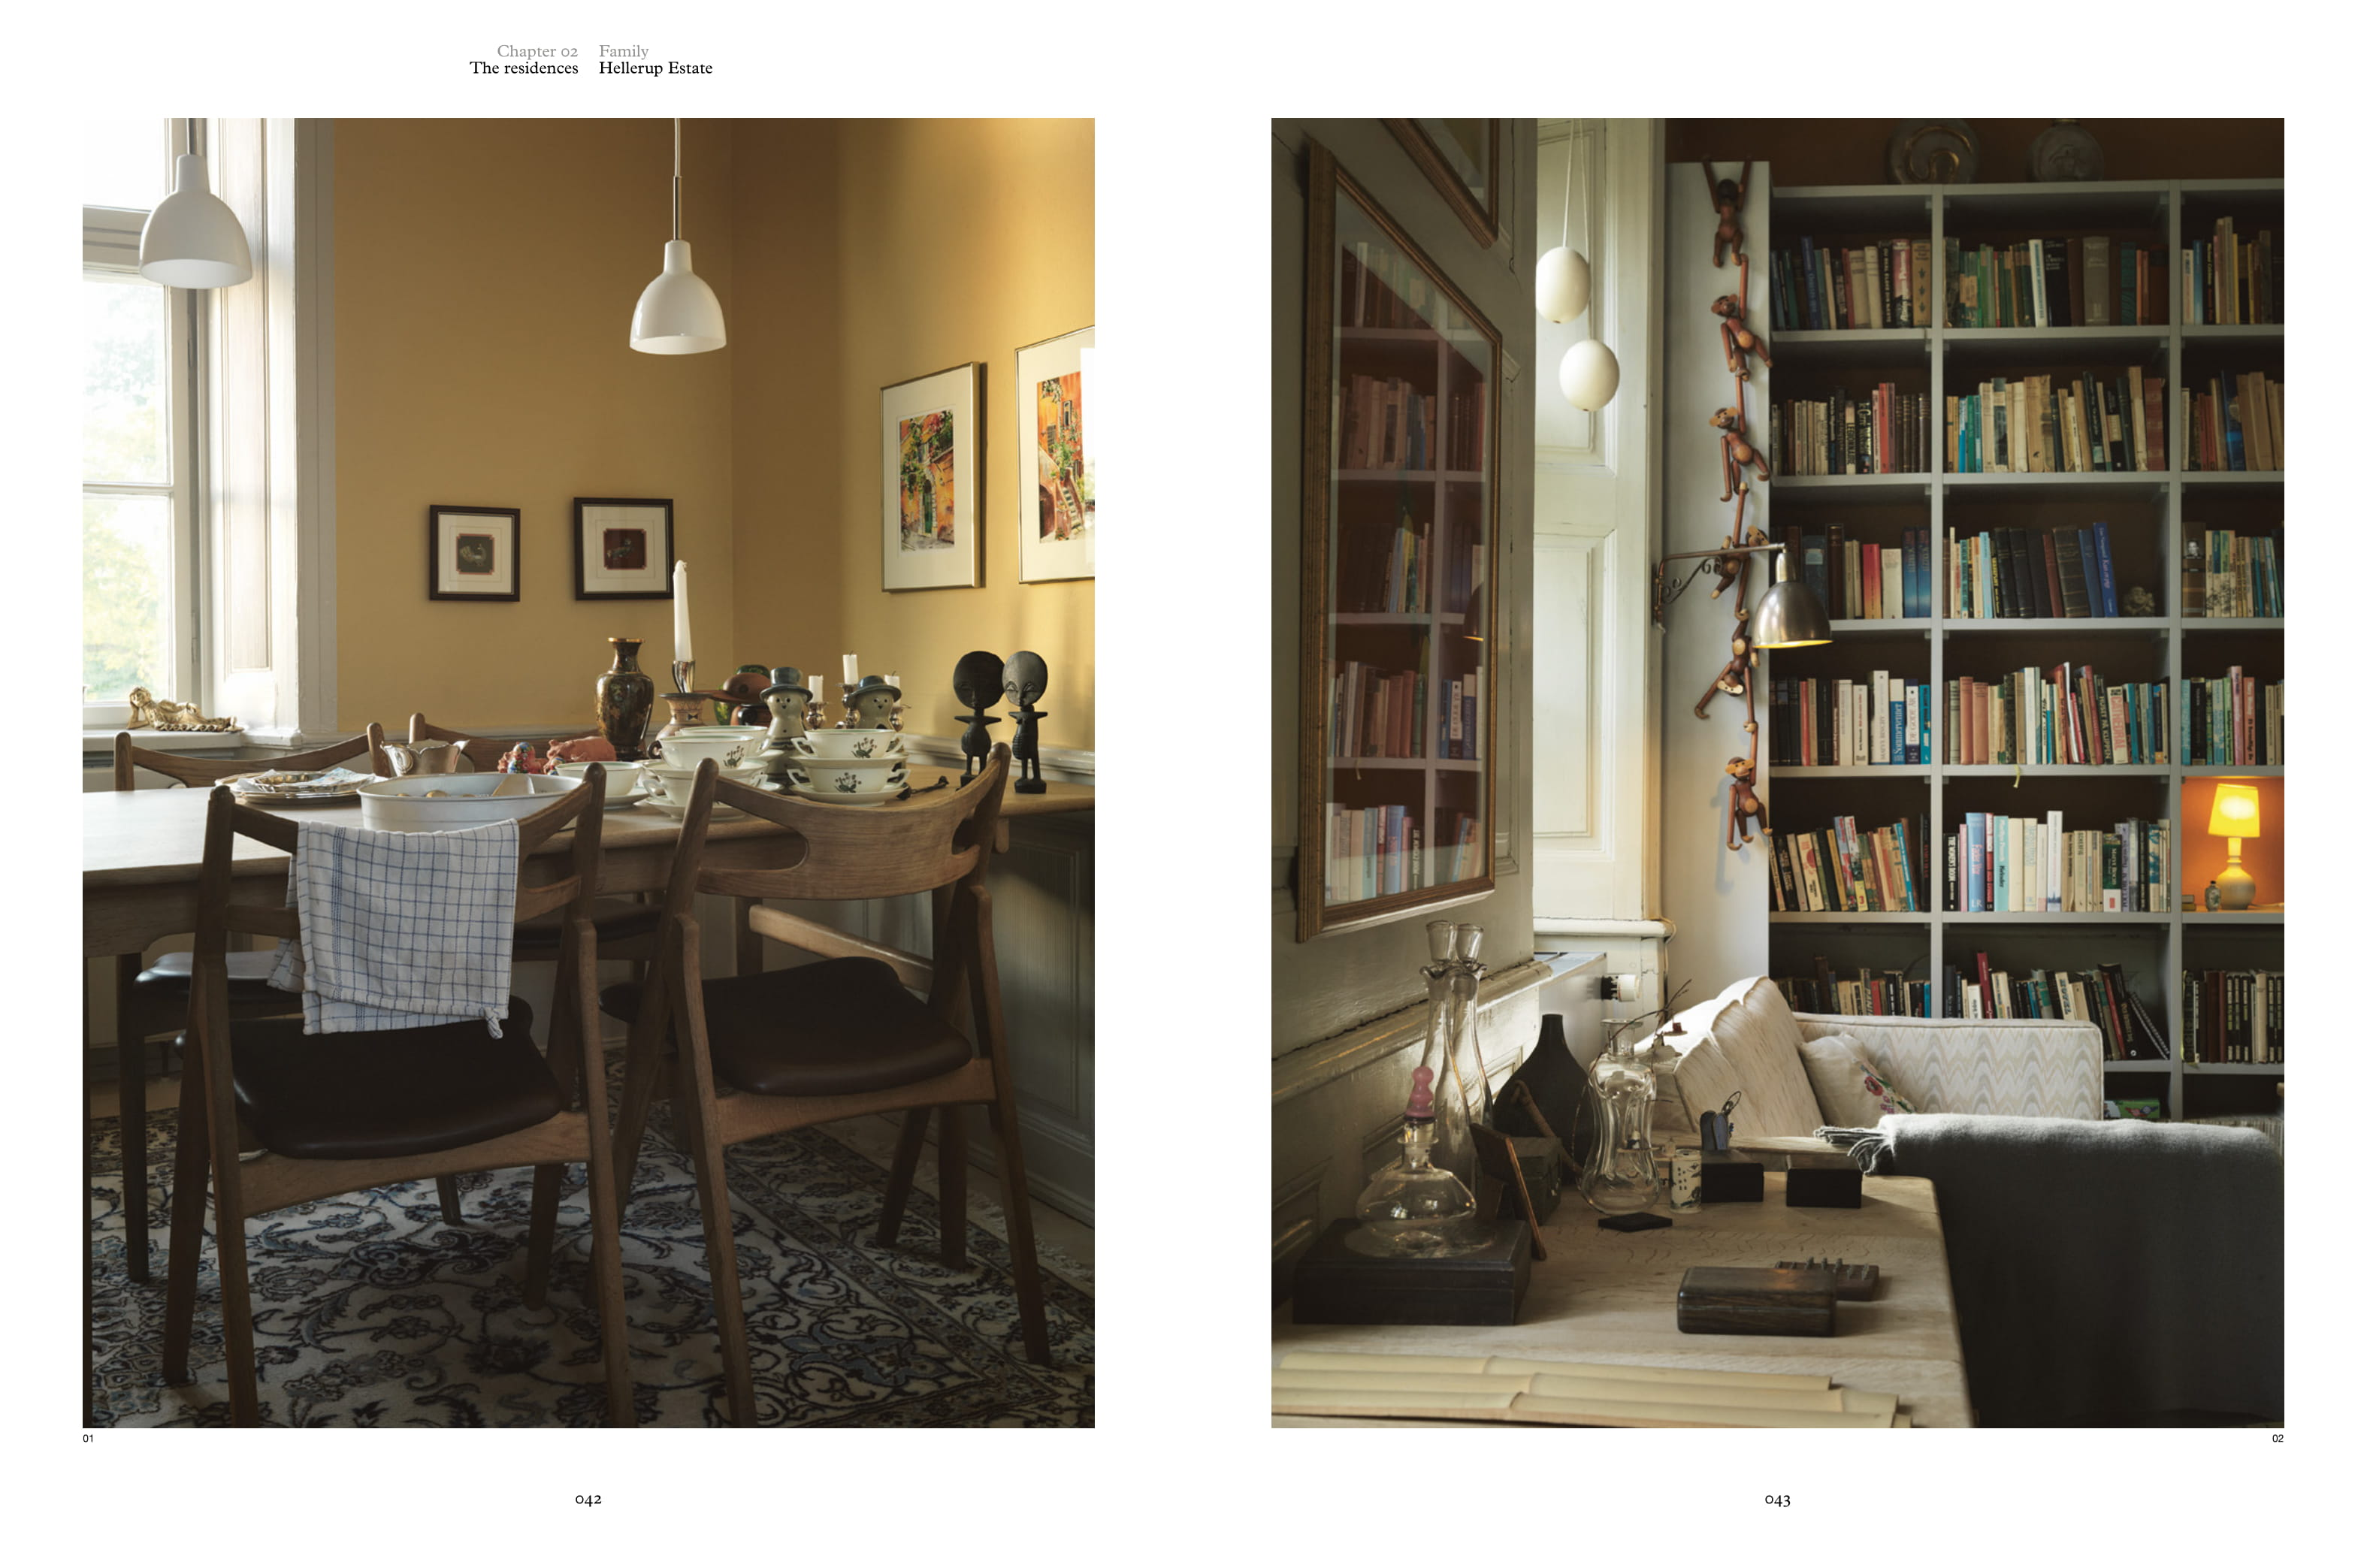 From Monocle Guide to Cosy Homes copyright Gestalten 2015